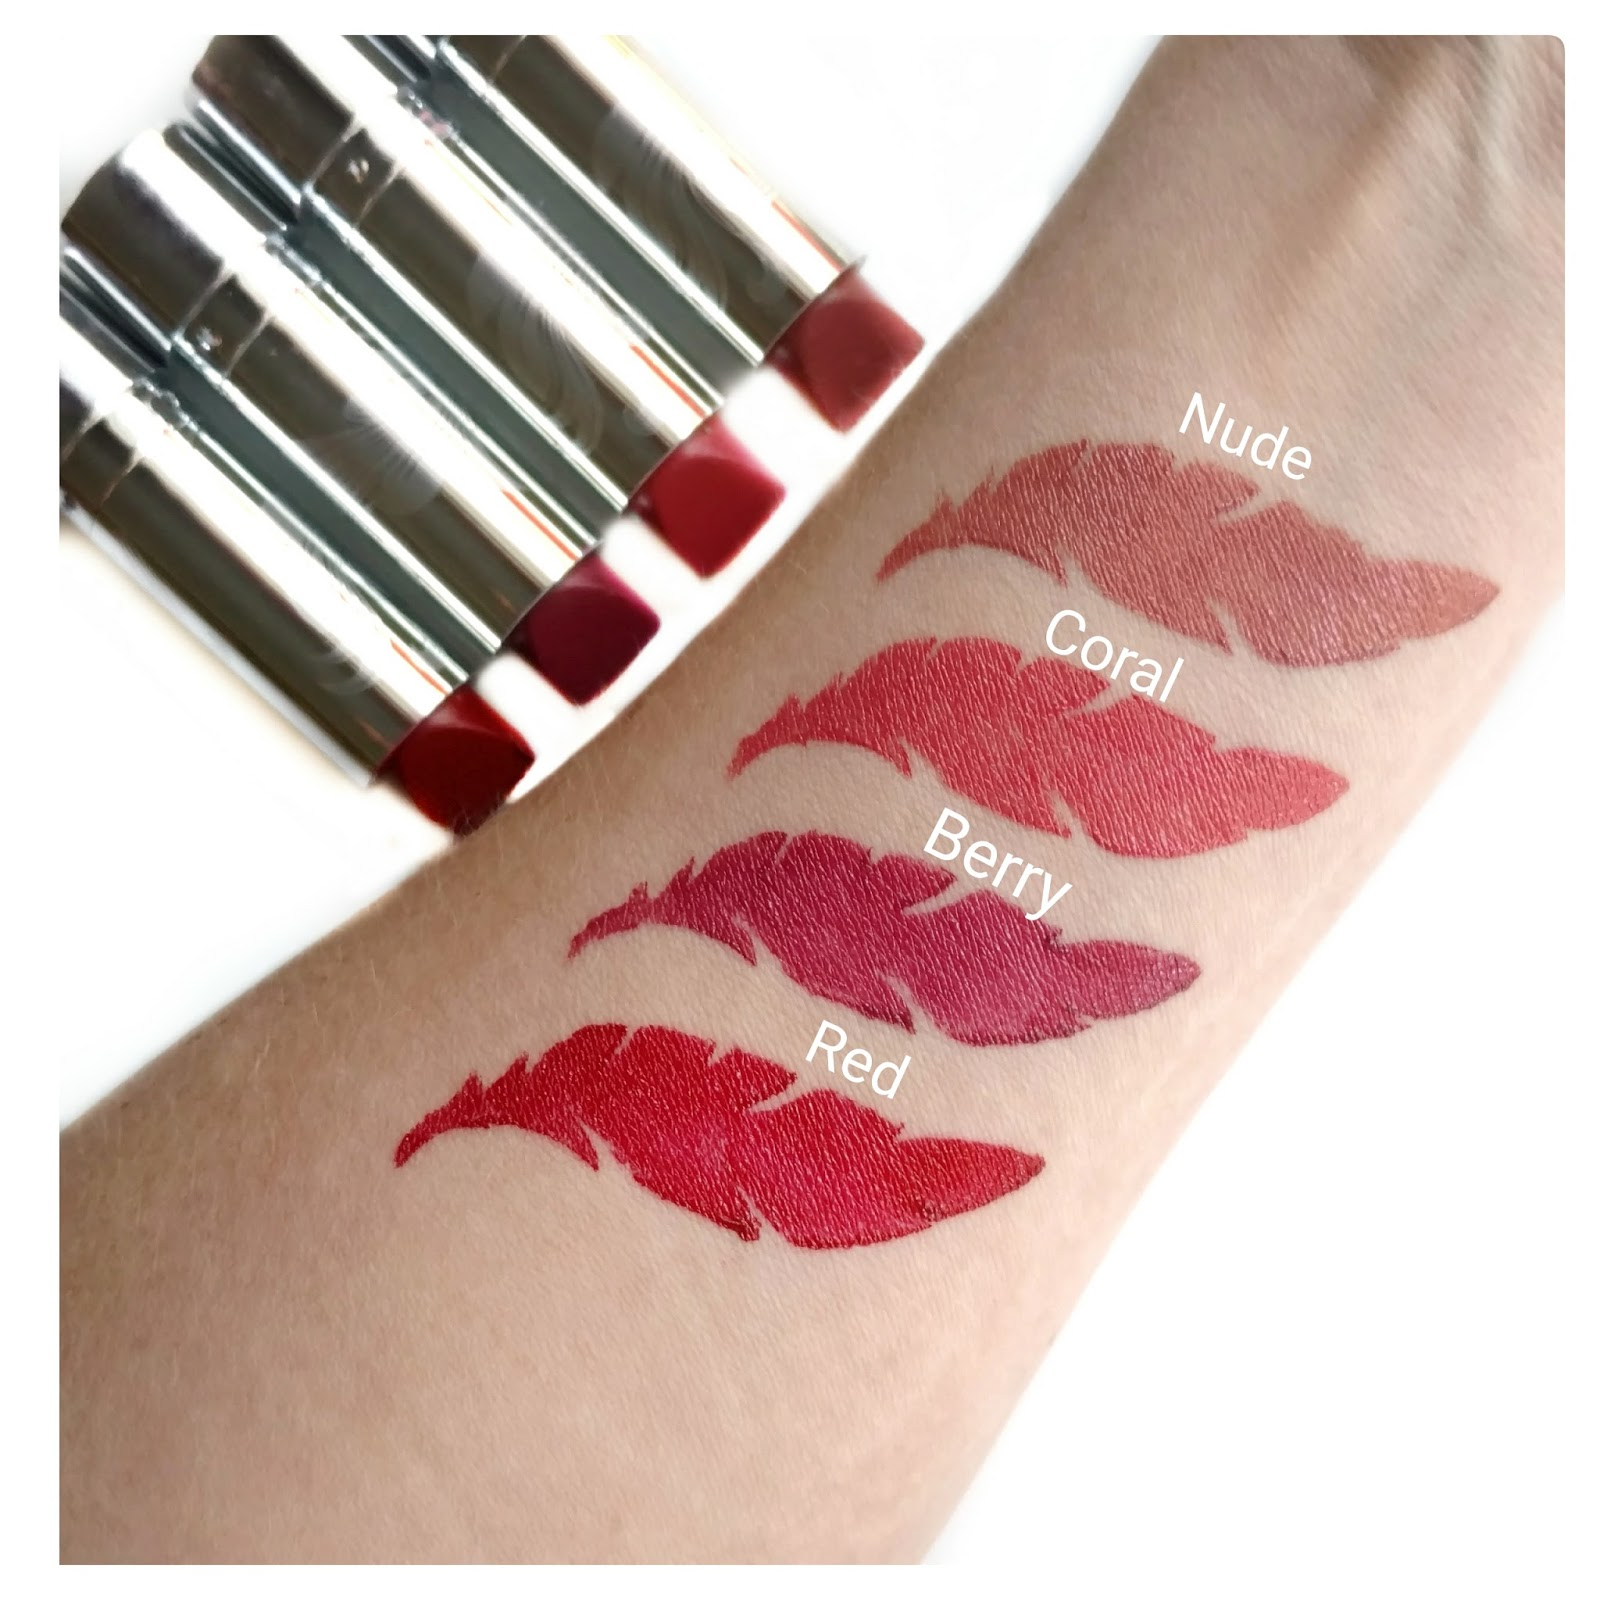 Physicians Formula Hypoallergenic Lipsticks swatches